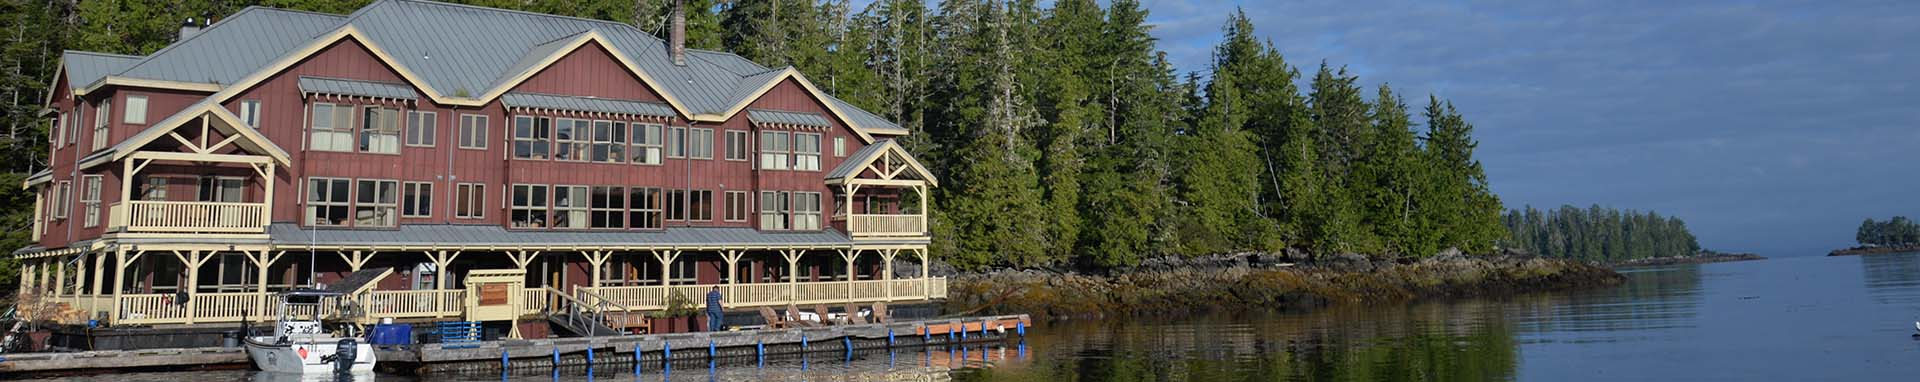 King Pacific Lodge in the Milbanke Sound